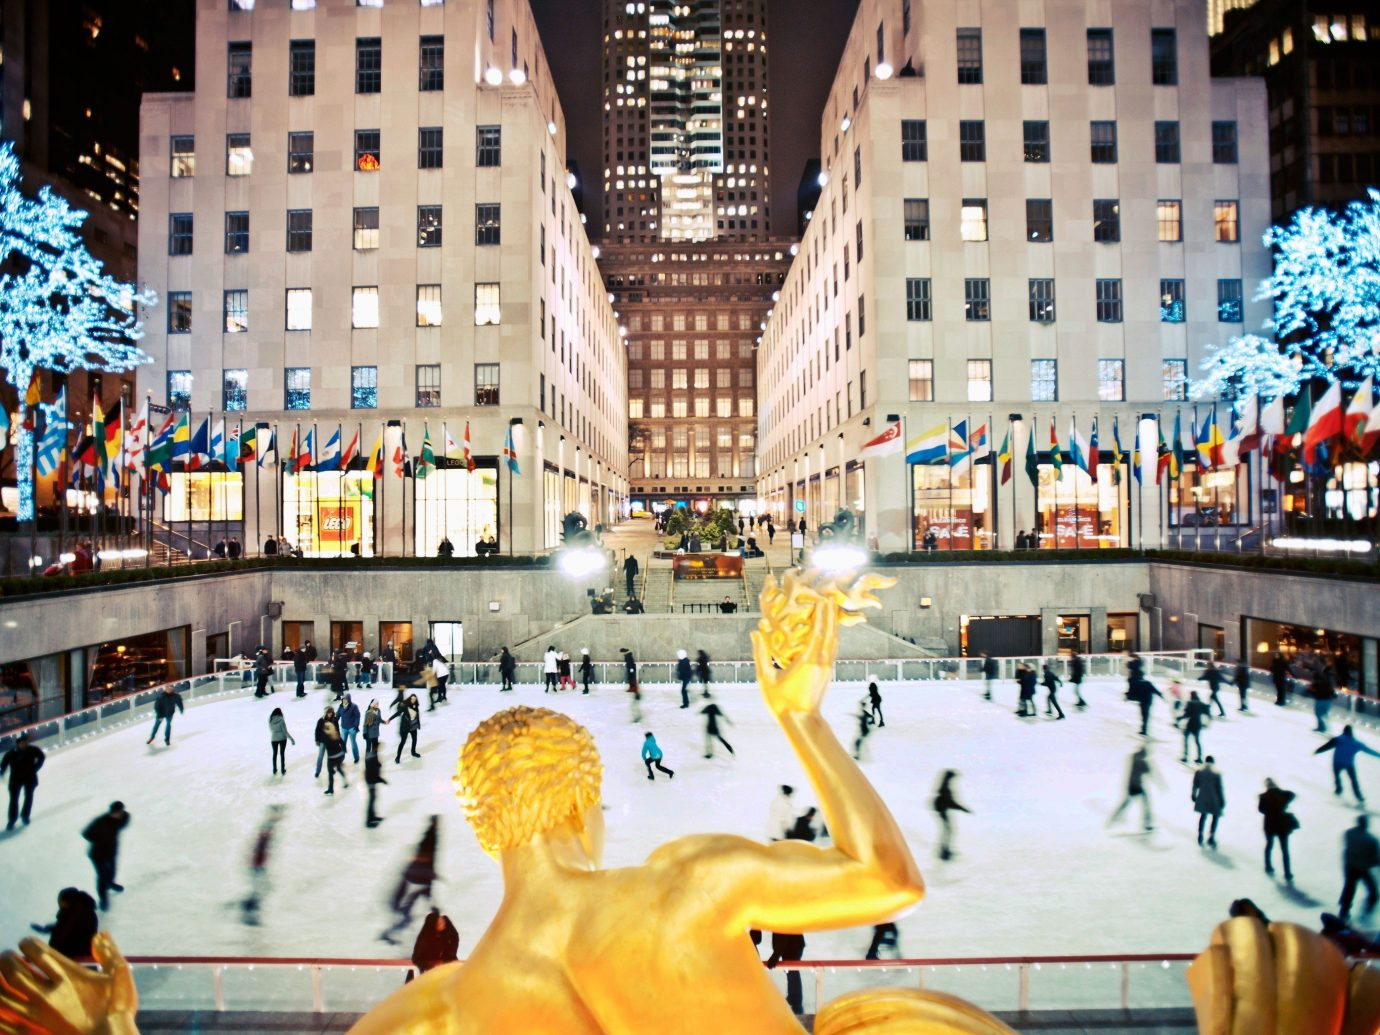 Trip Ideas plaza landmark City shopping mall ice rink town square amusement park tourism Downtown Resort park cityscape pedestrian